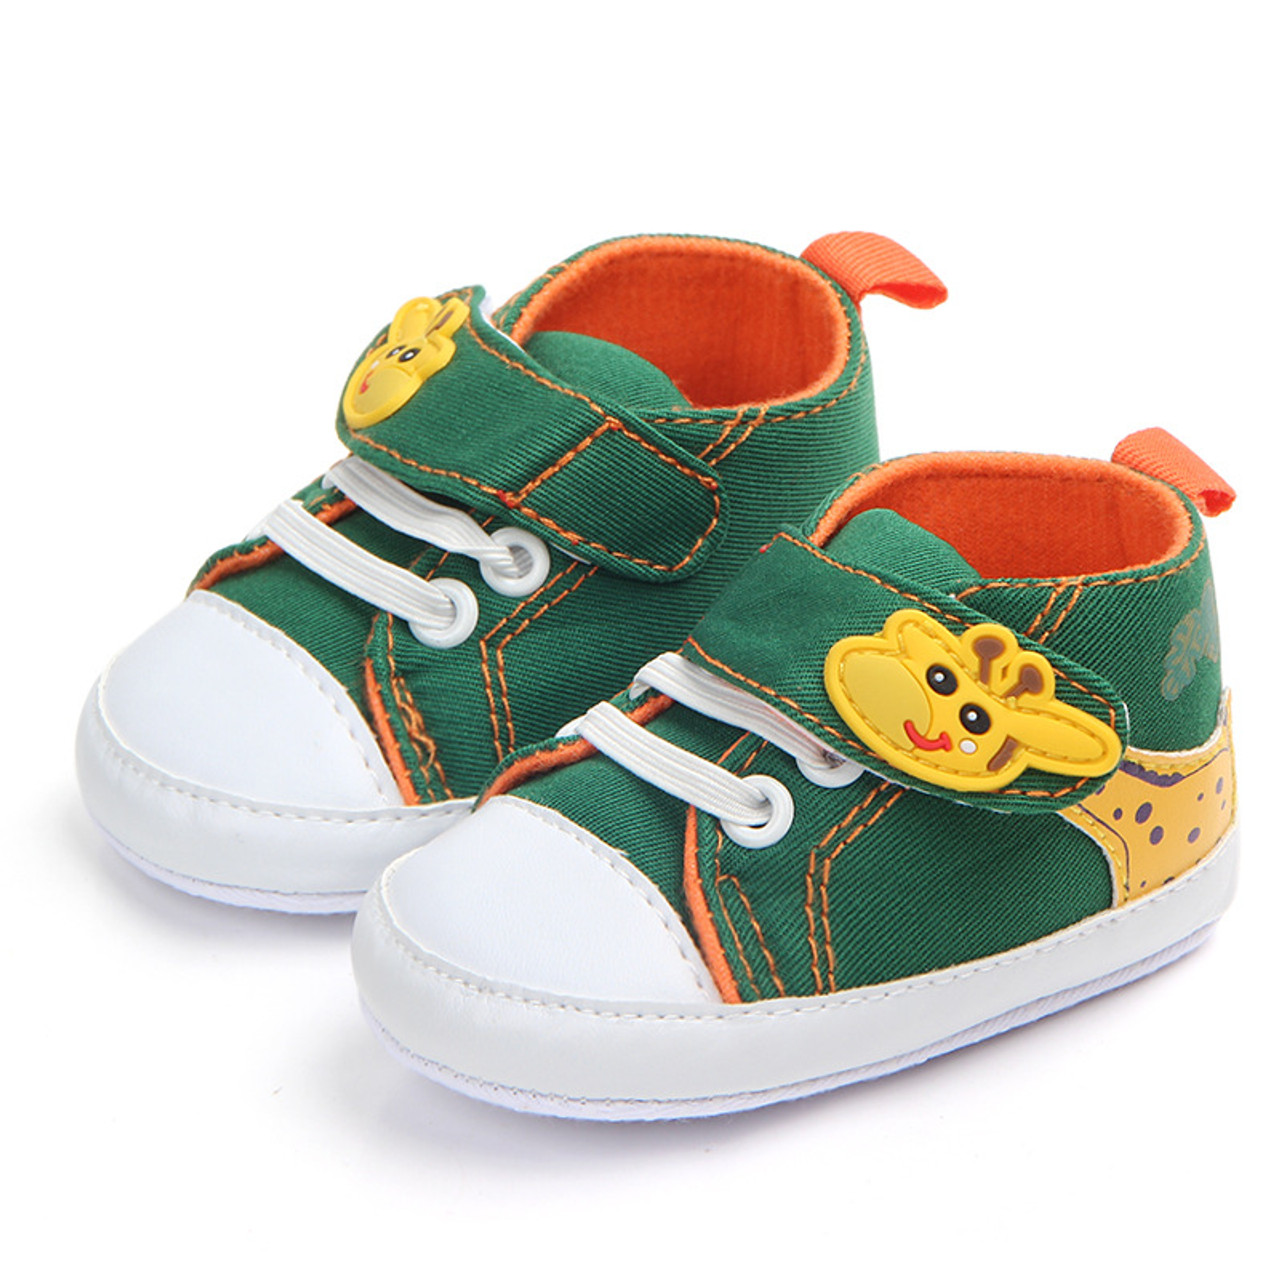 0-12M canvas baby shoes boys soft sole toddler infant shoes newborn boys  sneakers baby moccasins first walker F22 - OnshopDeals.Com dd50e4e13112